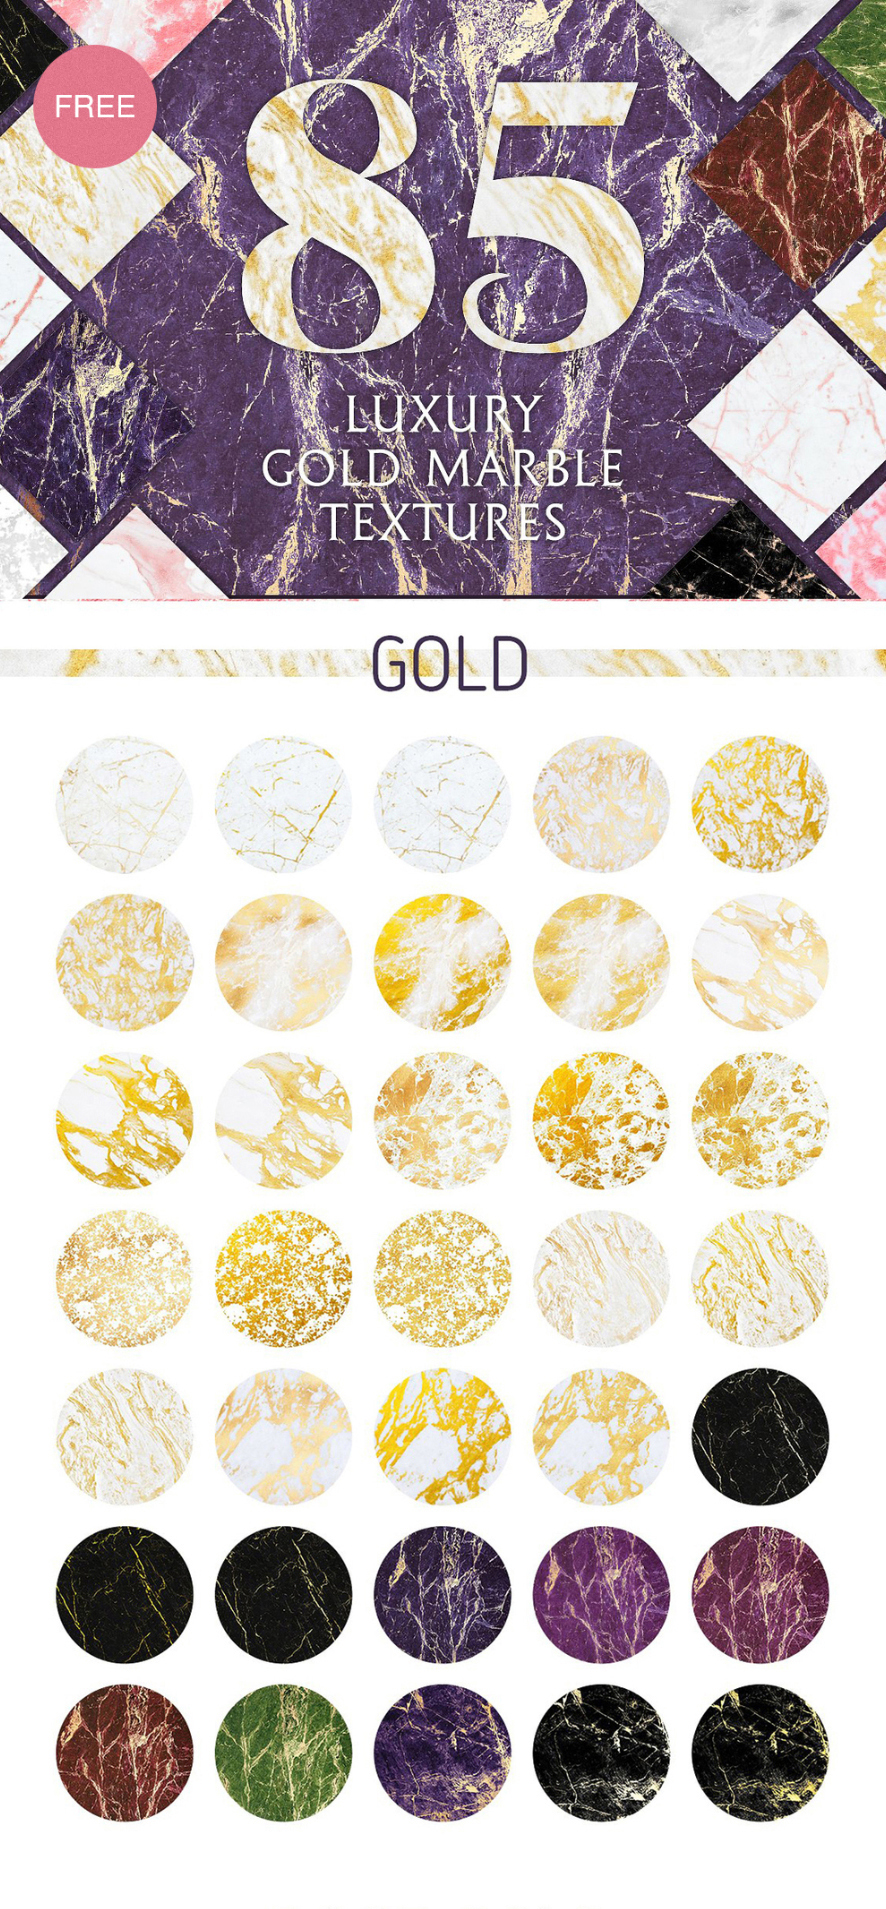 10 Luxury Gold Marble Textures